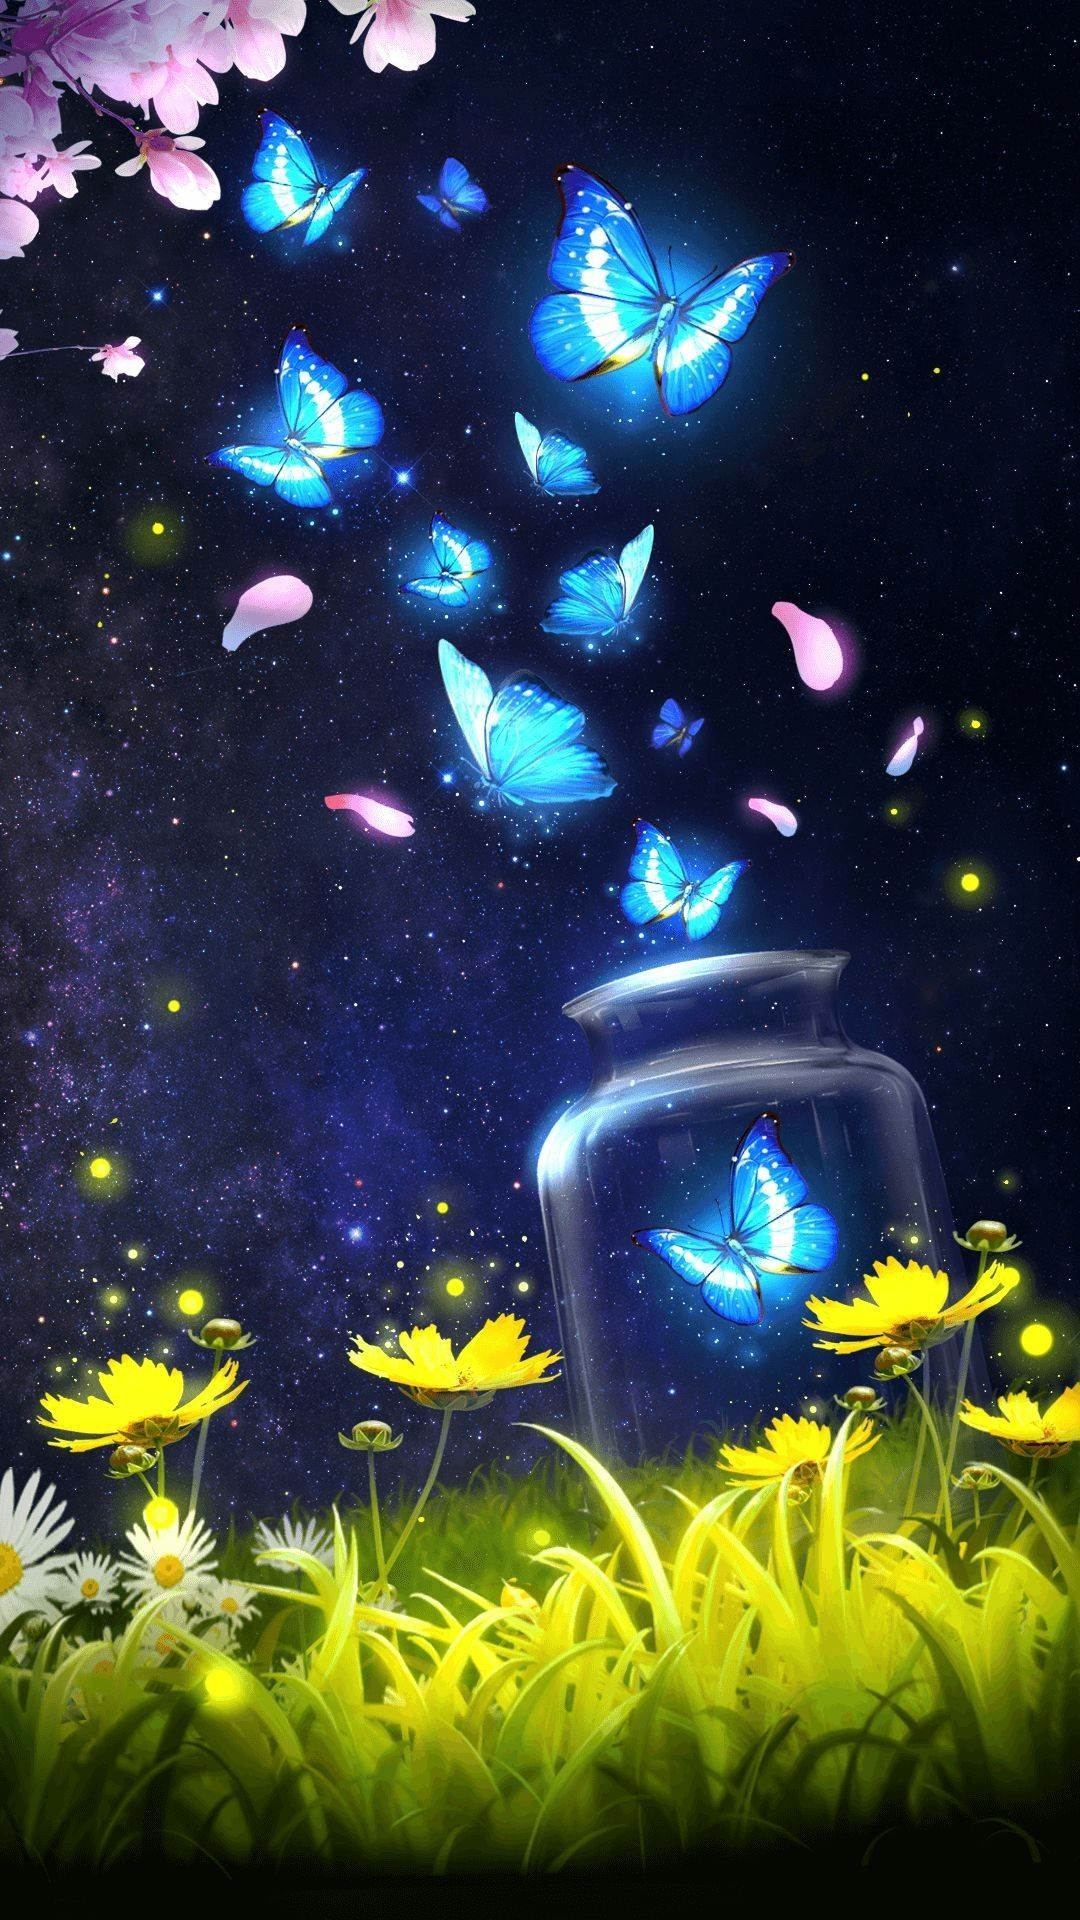 Pin by Àìźá Ķhàñ on ₩ĺľPAp!£ŕ Butterfly wallpaper